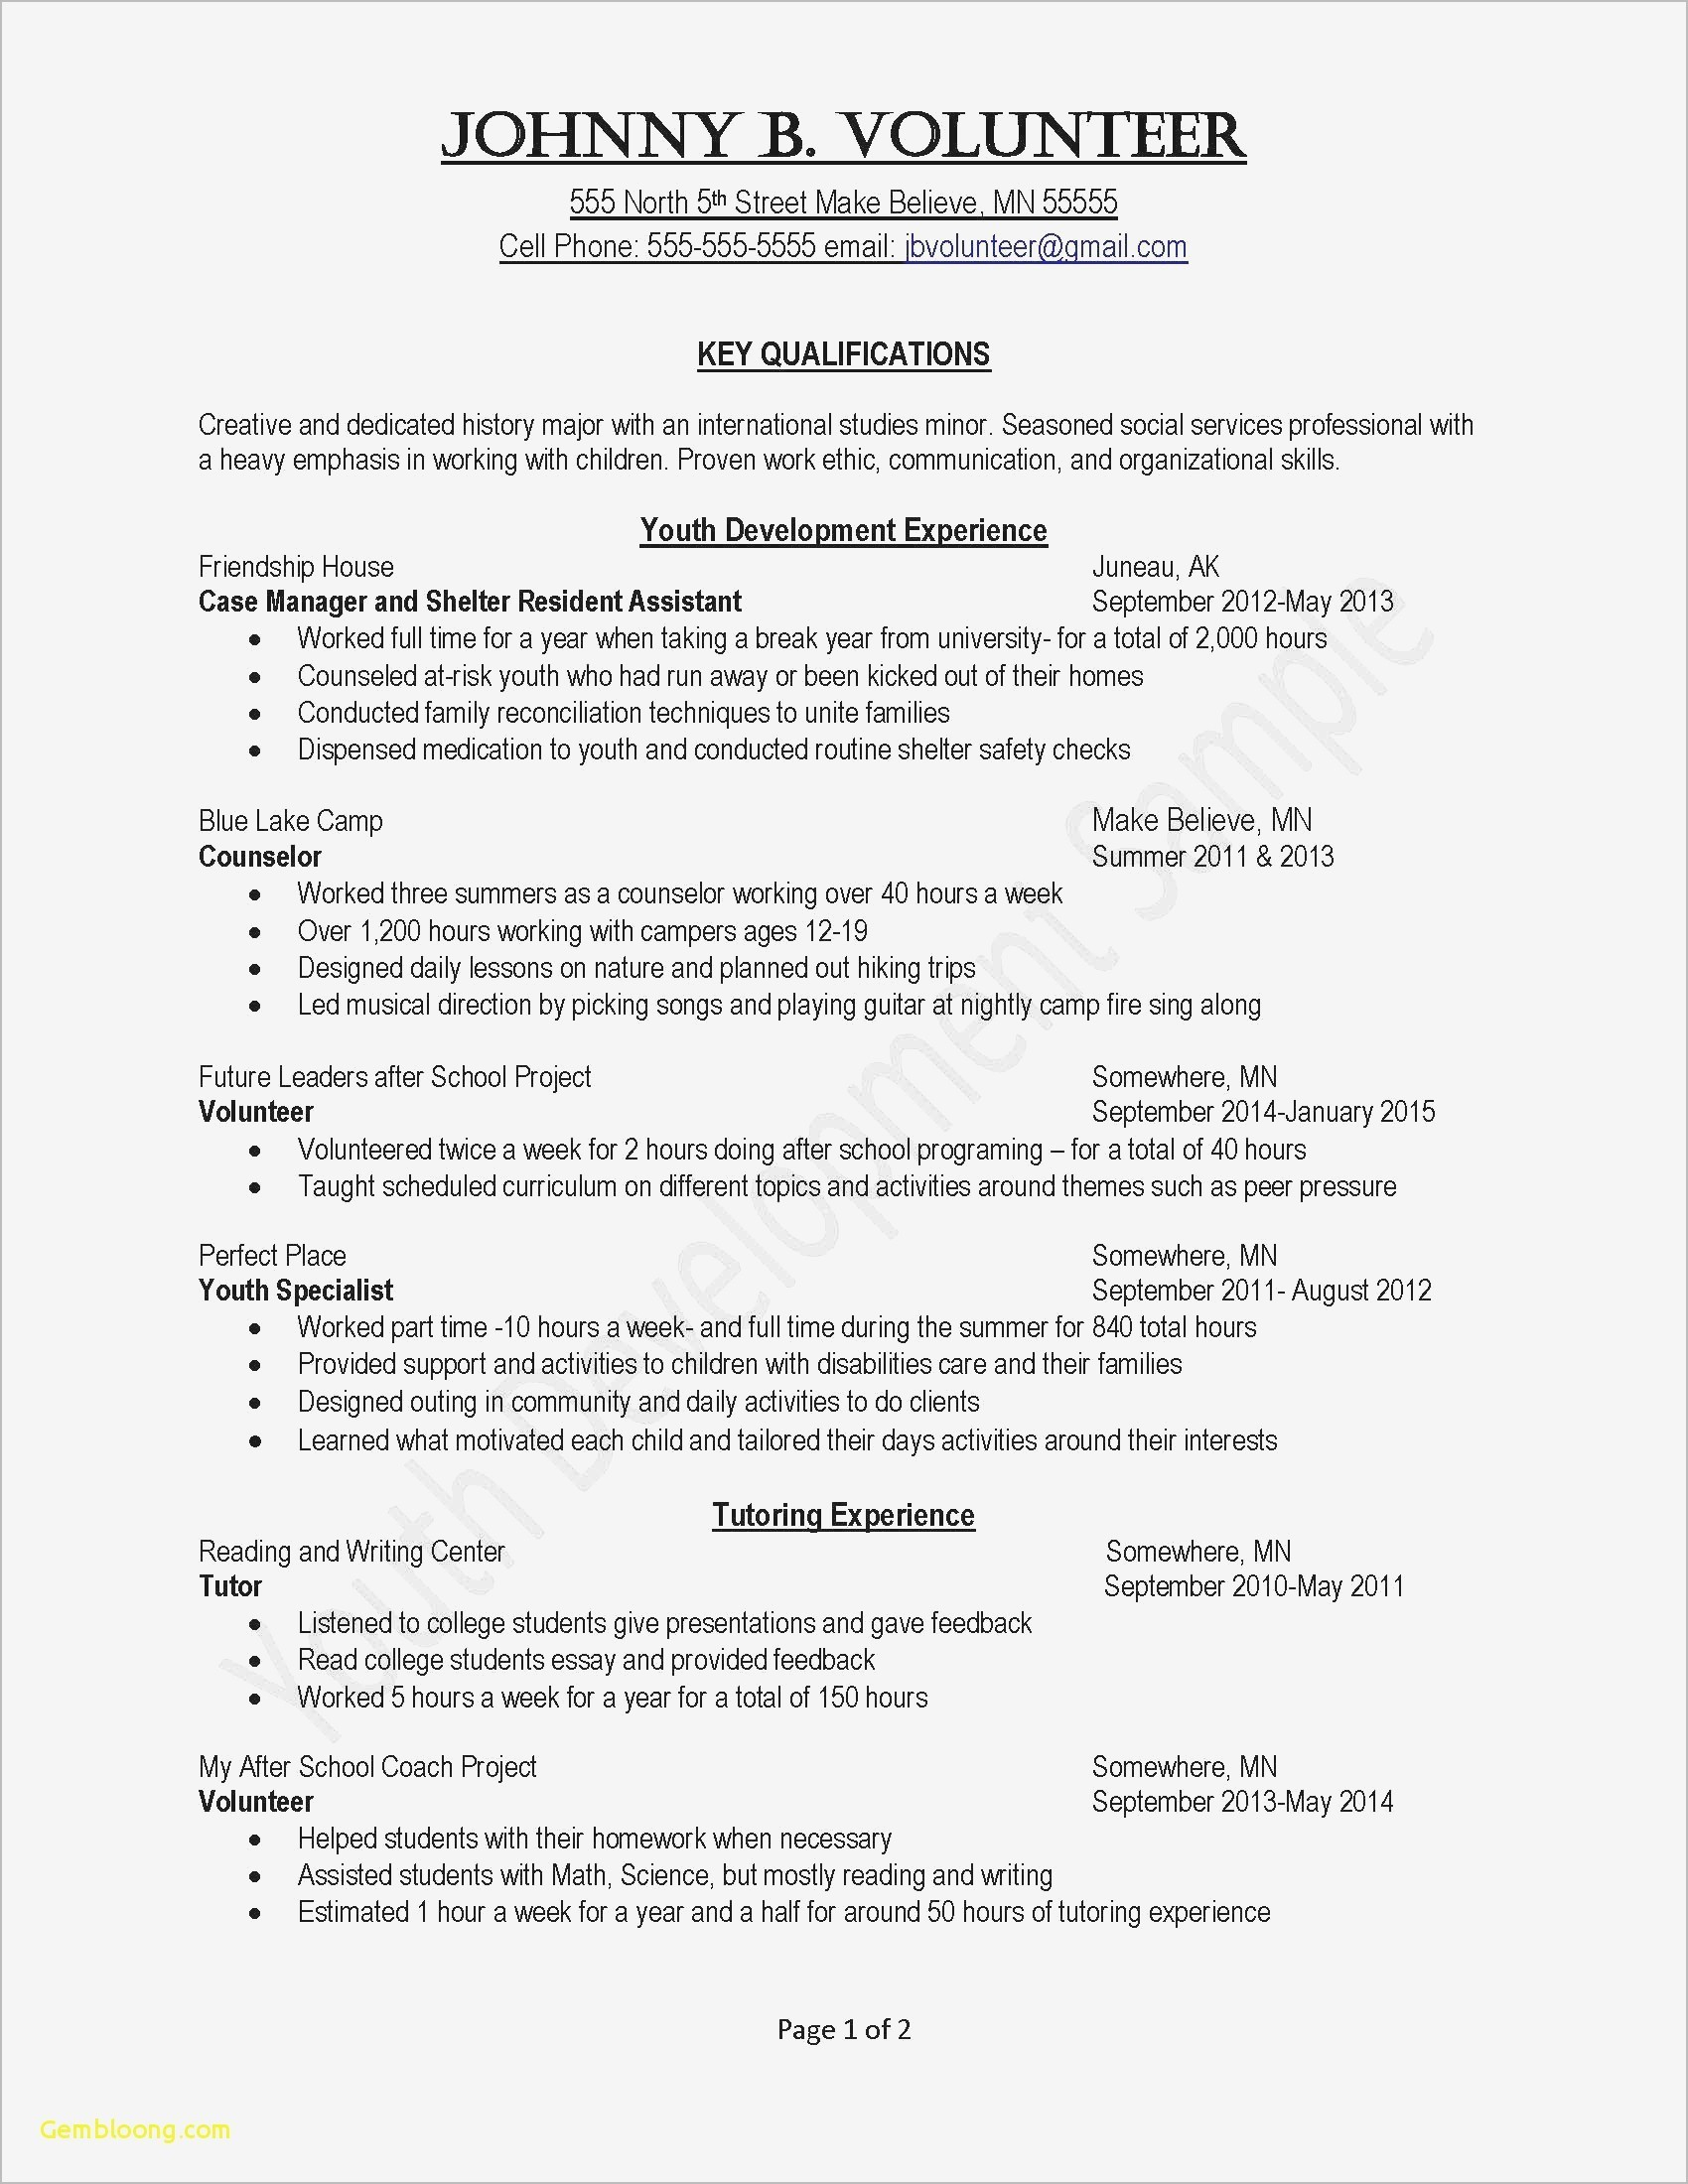 Creating A Cover Letter Template - Fax Cover Sheet for Resume Inspirationa Fax Cover Letter Template